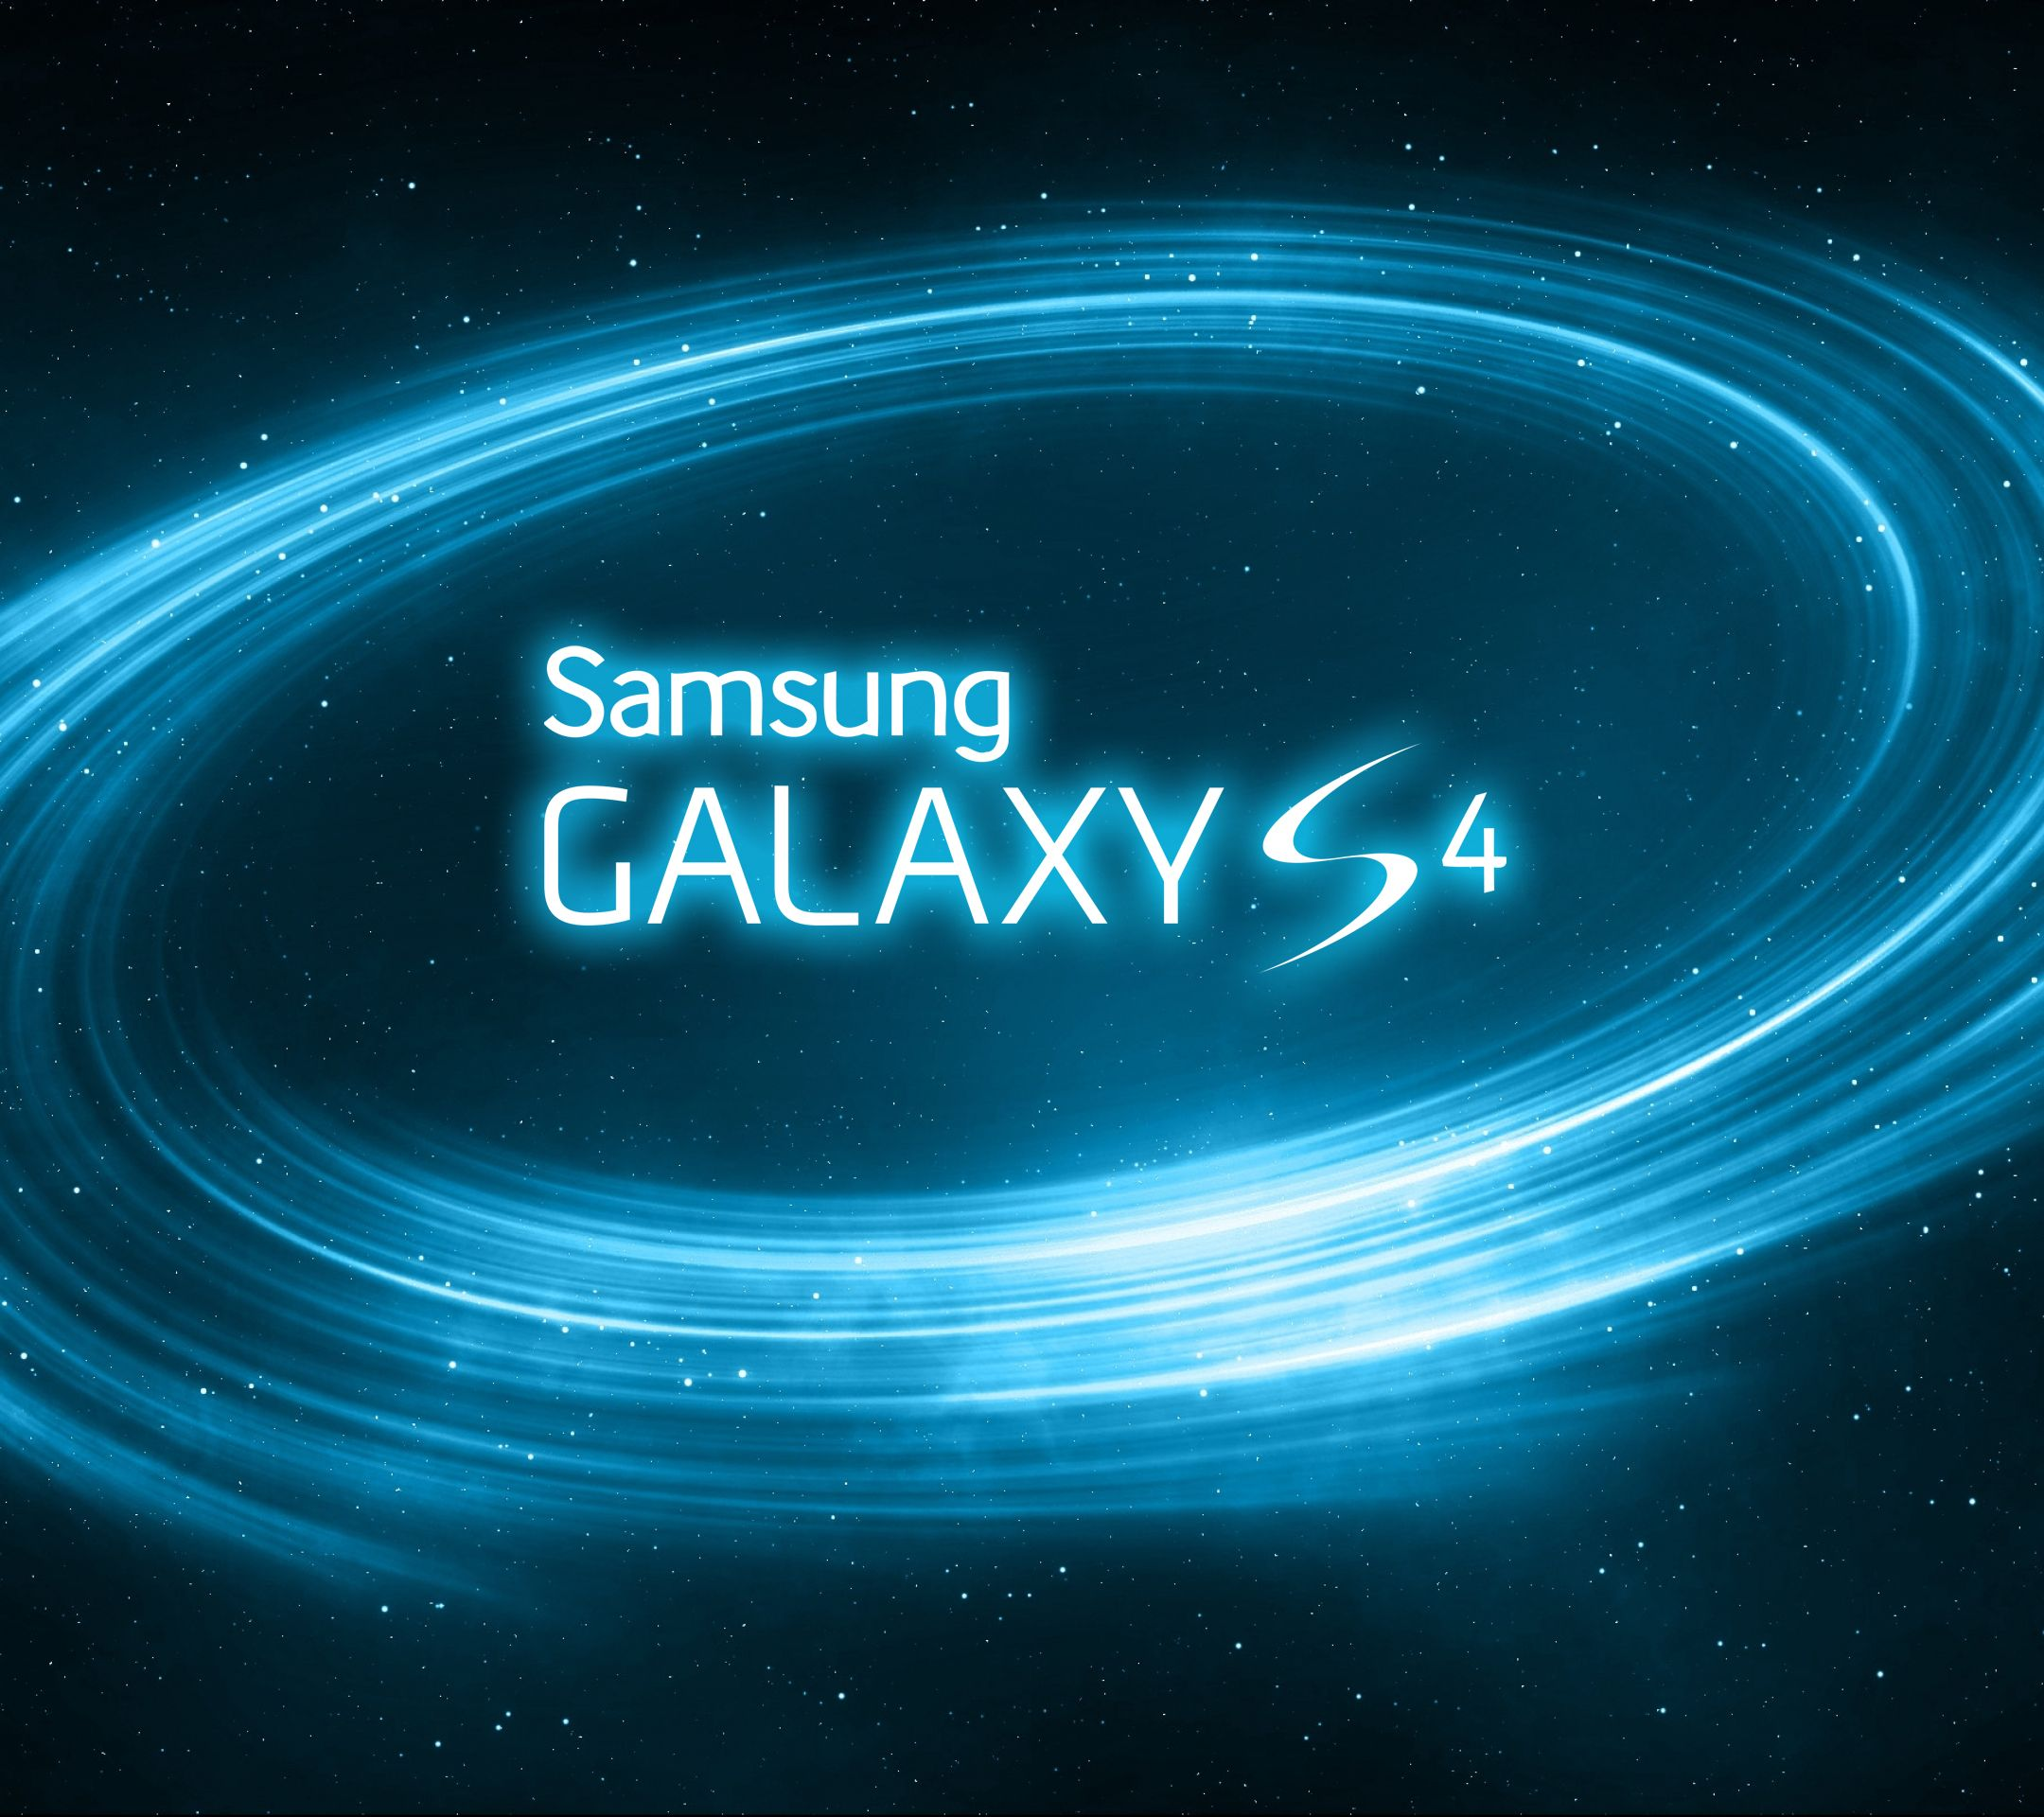 Samsung Galaxy S4 Wallpapers Top Free Samsung Galaxy S4 Backgrounds Wallpaperaccess